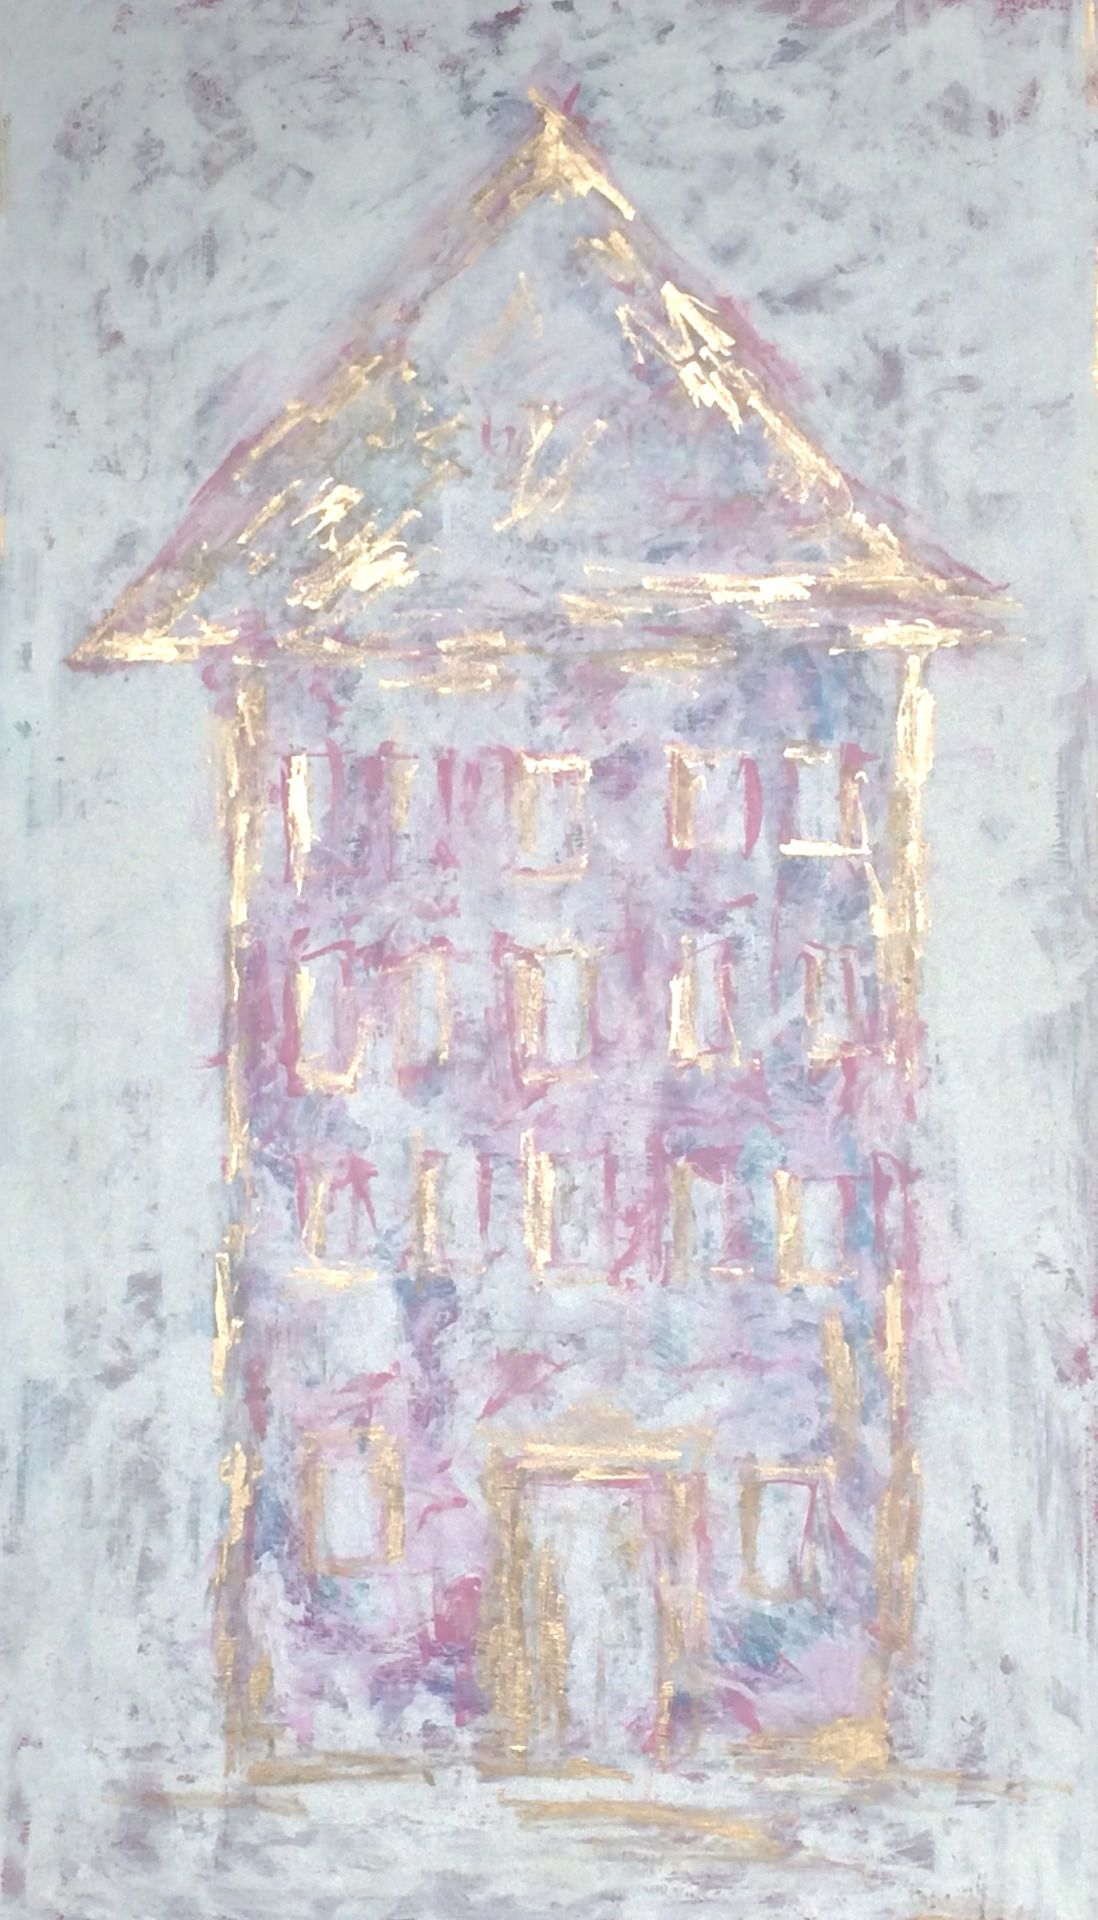 """Title: """"Pink House"""" by ZsaZsa Bellagio"""